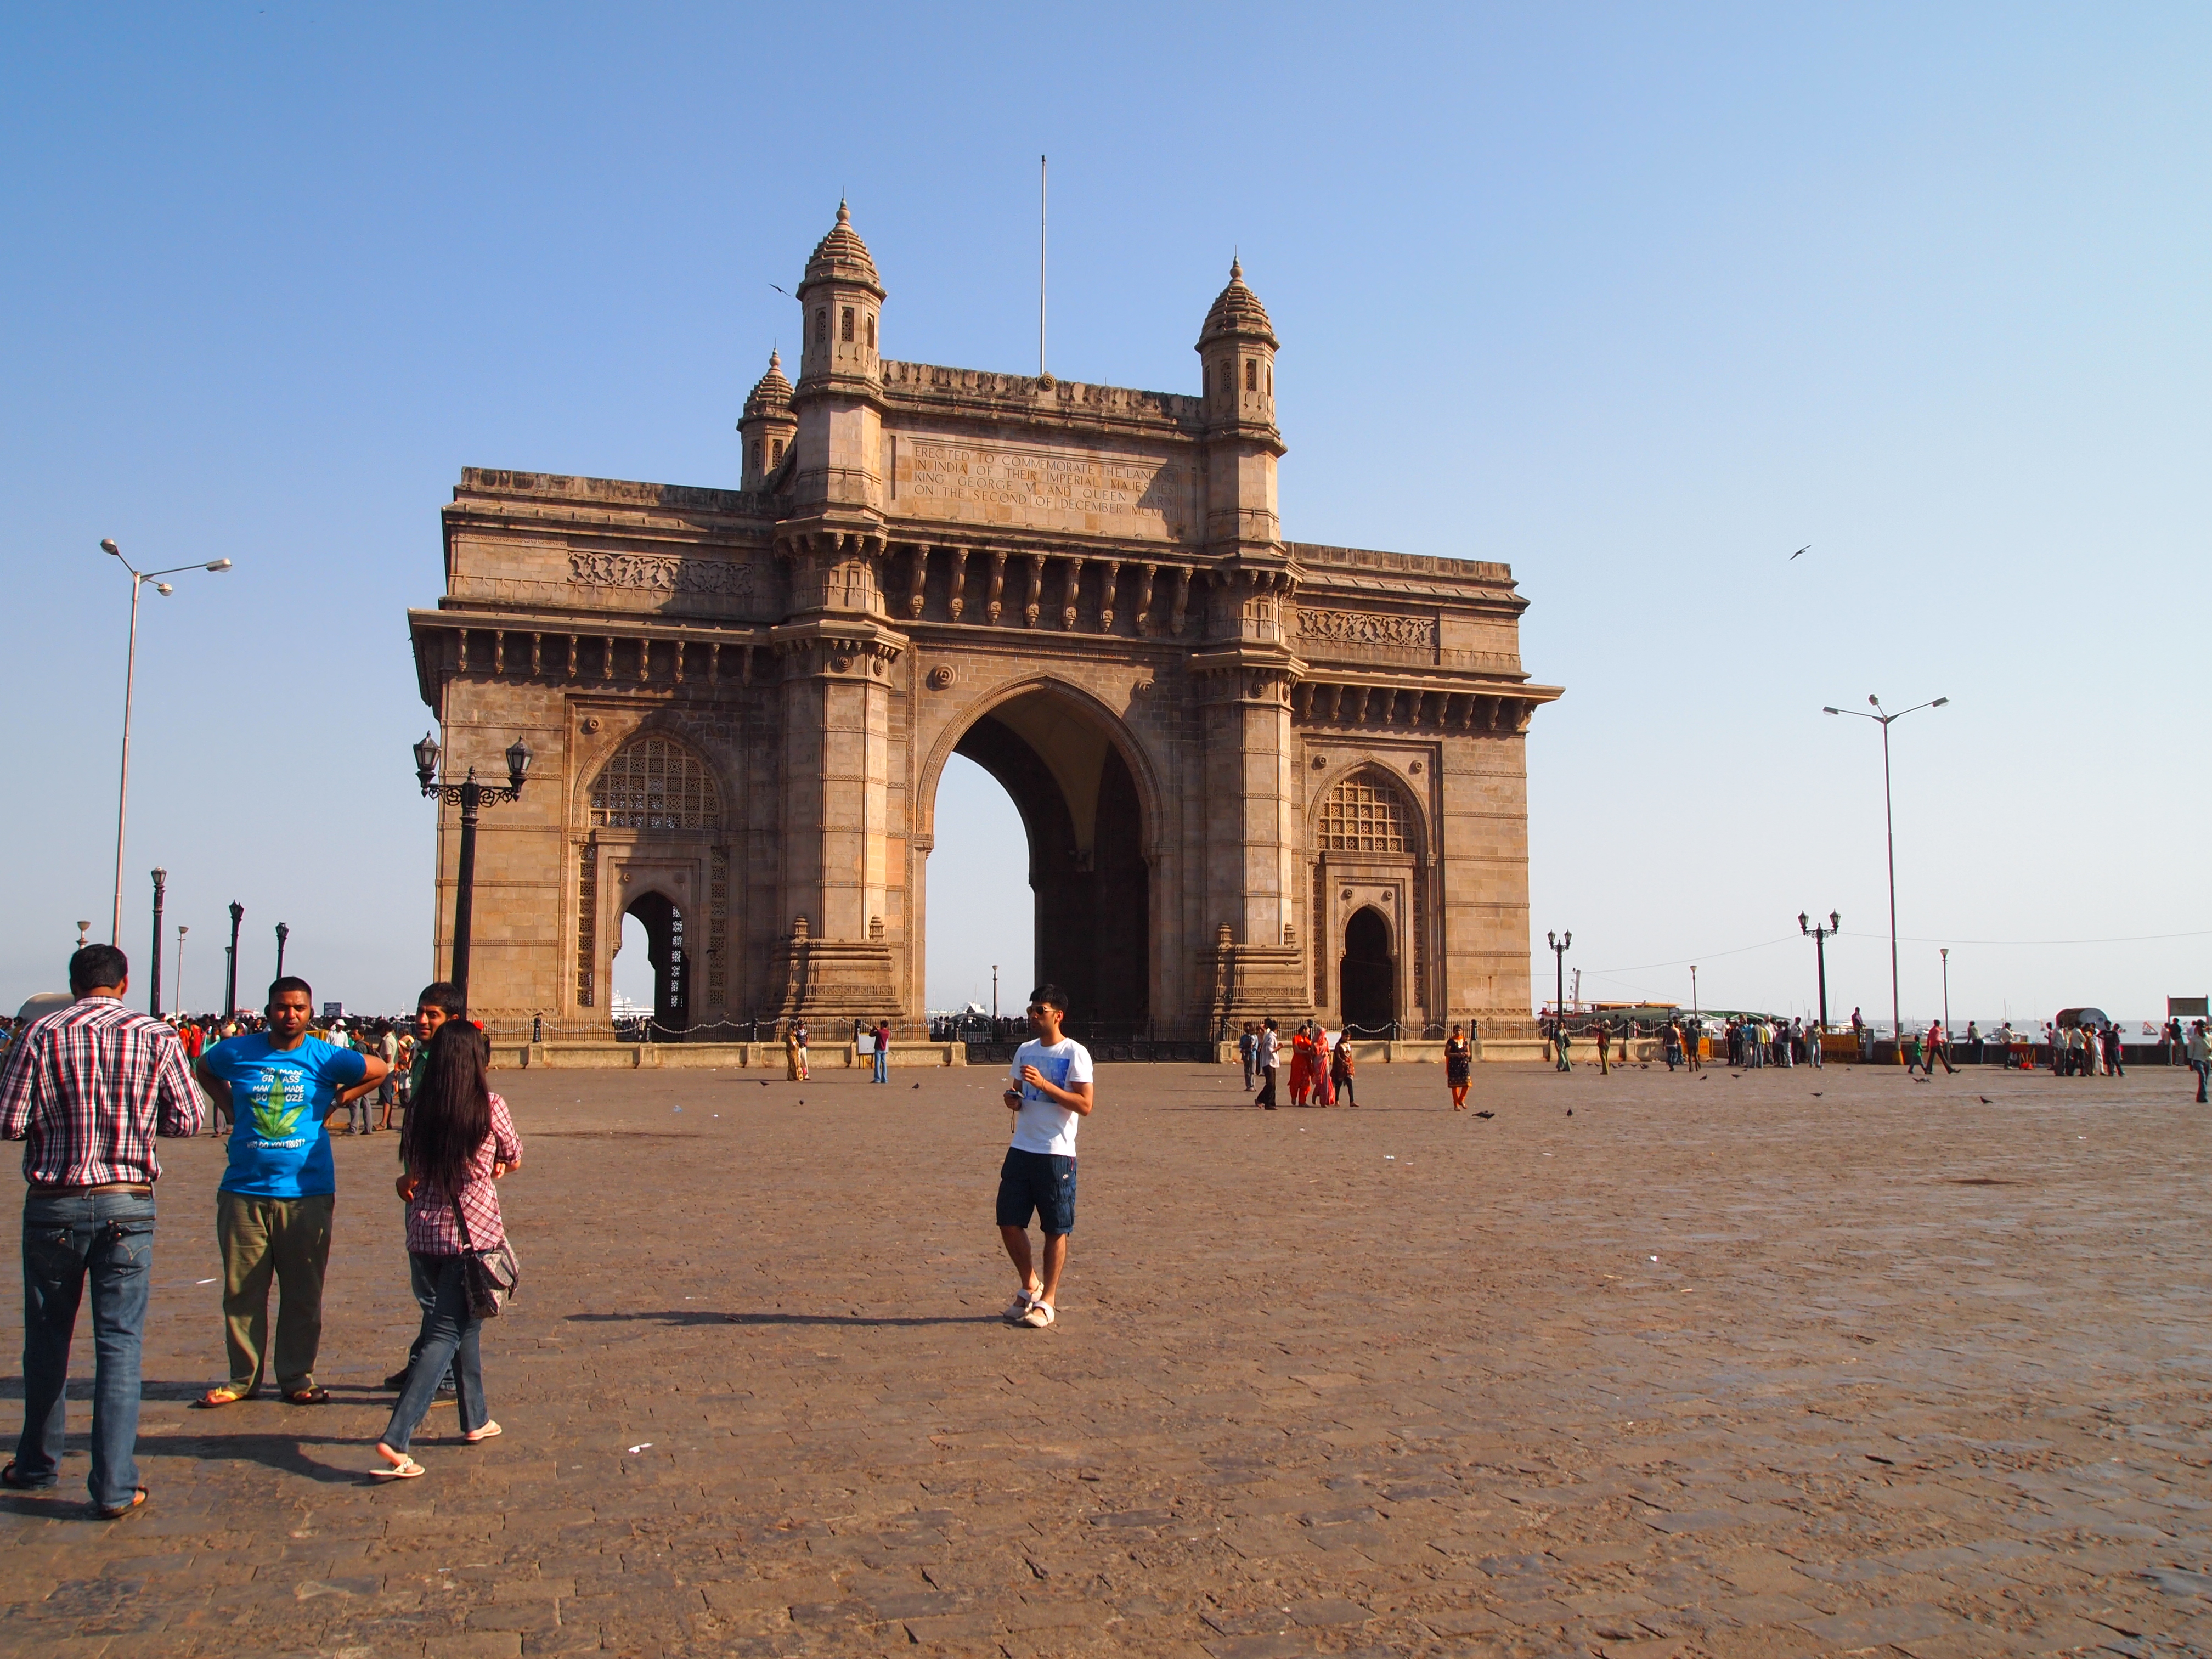 gateway of india from wikipedia